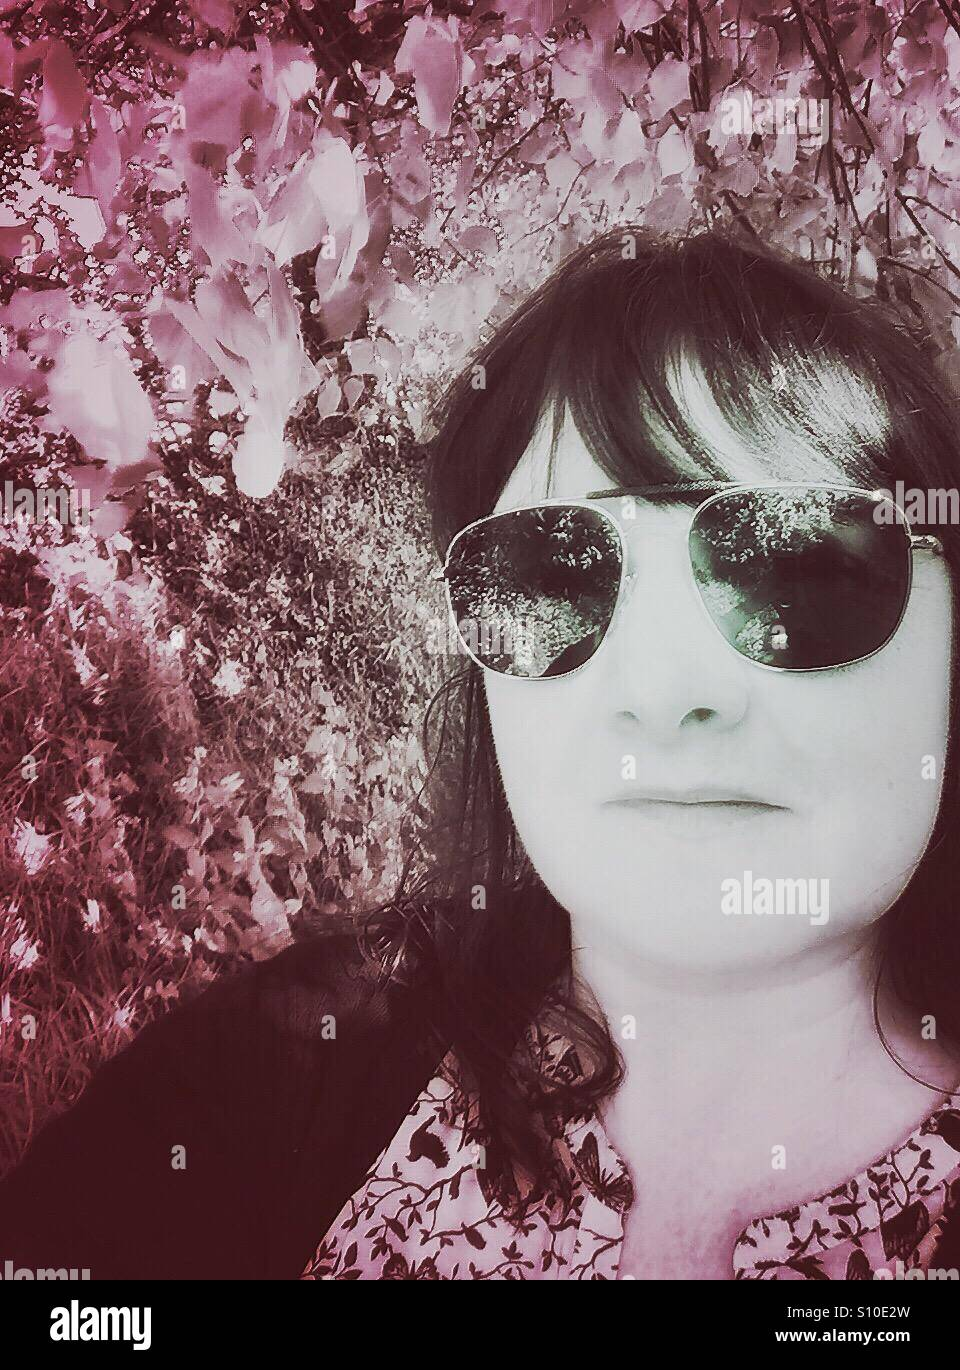 Selfie of woman against Spring hedgerow. - Stock Image